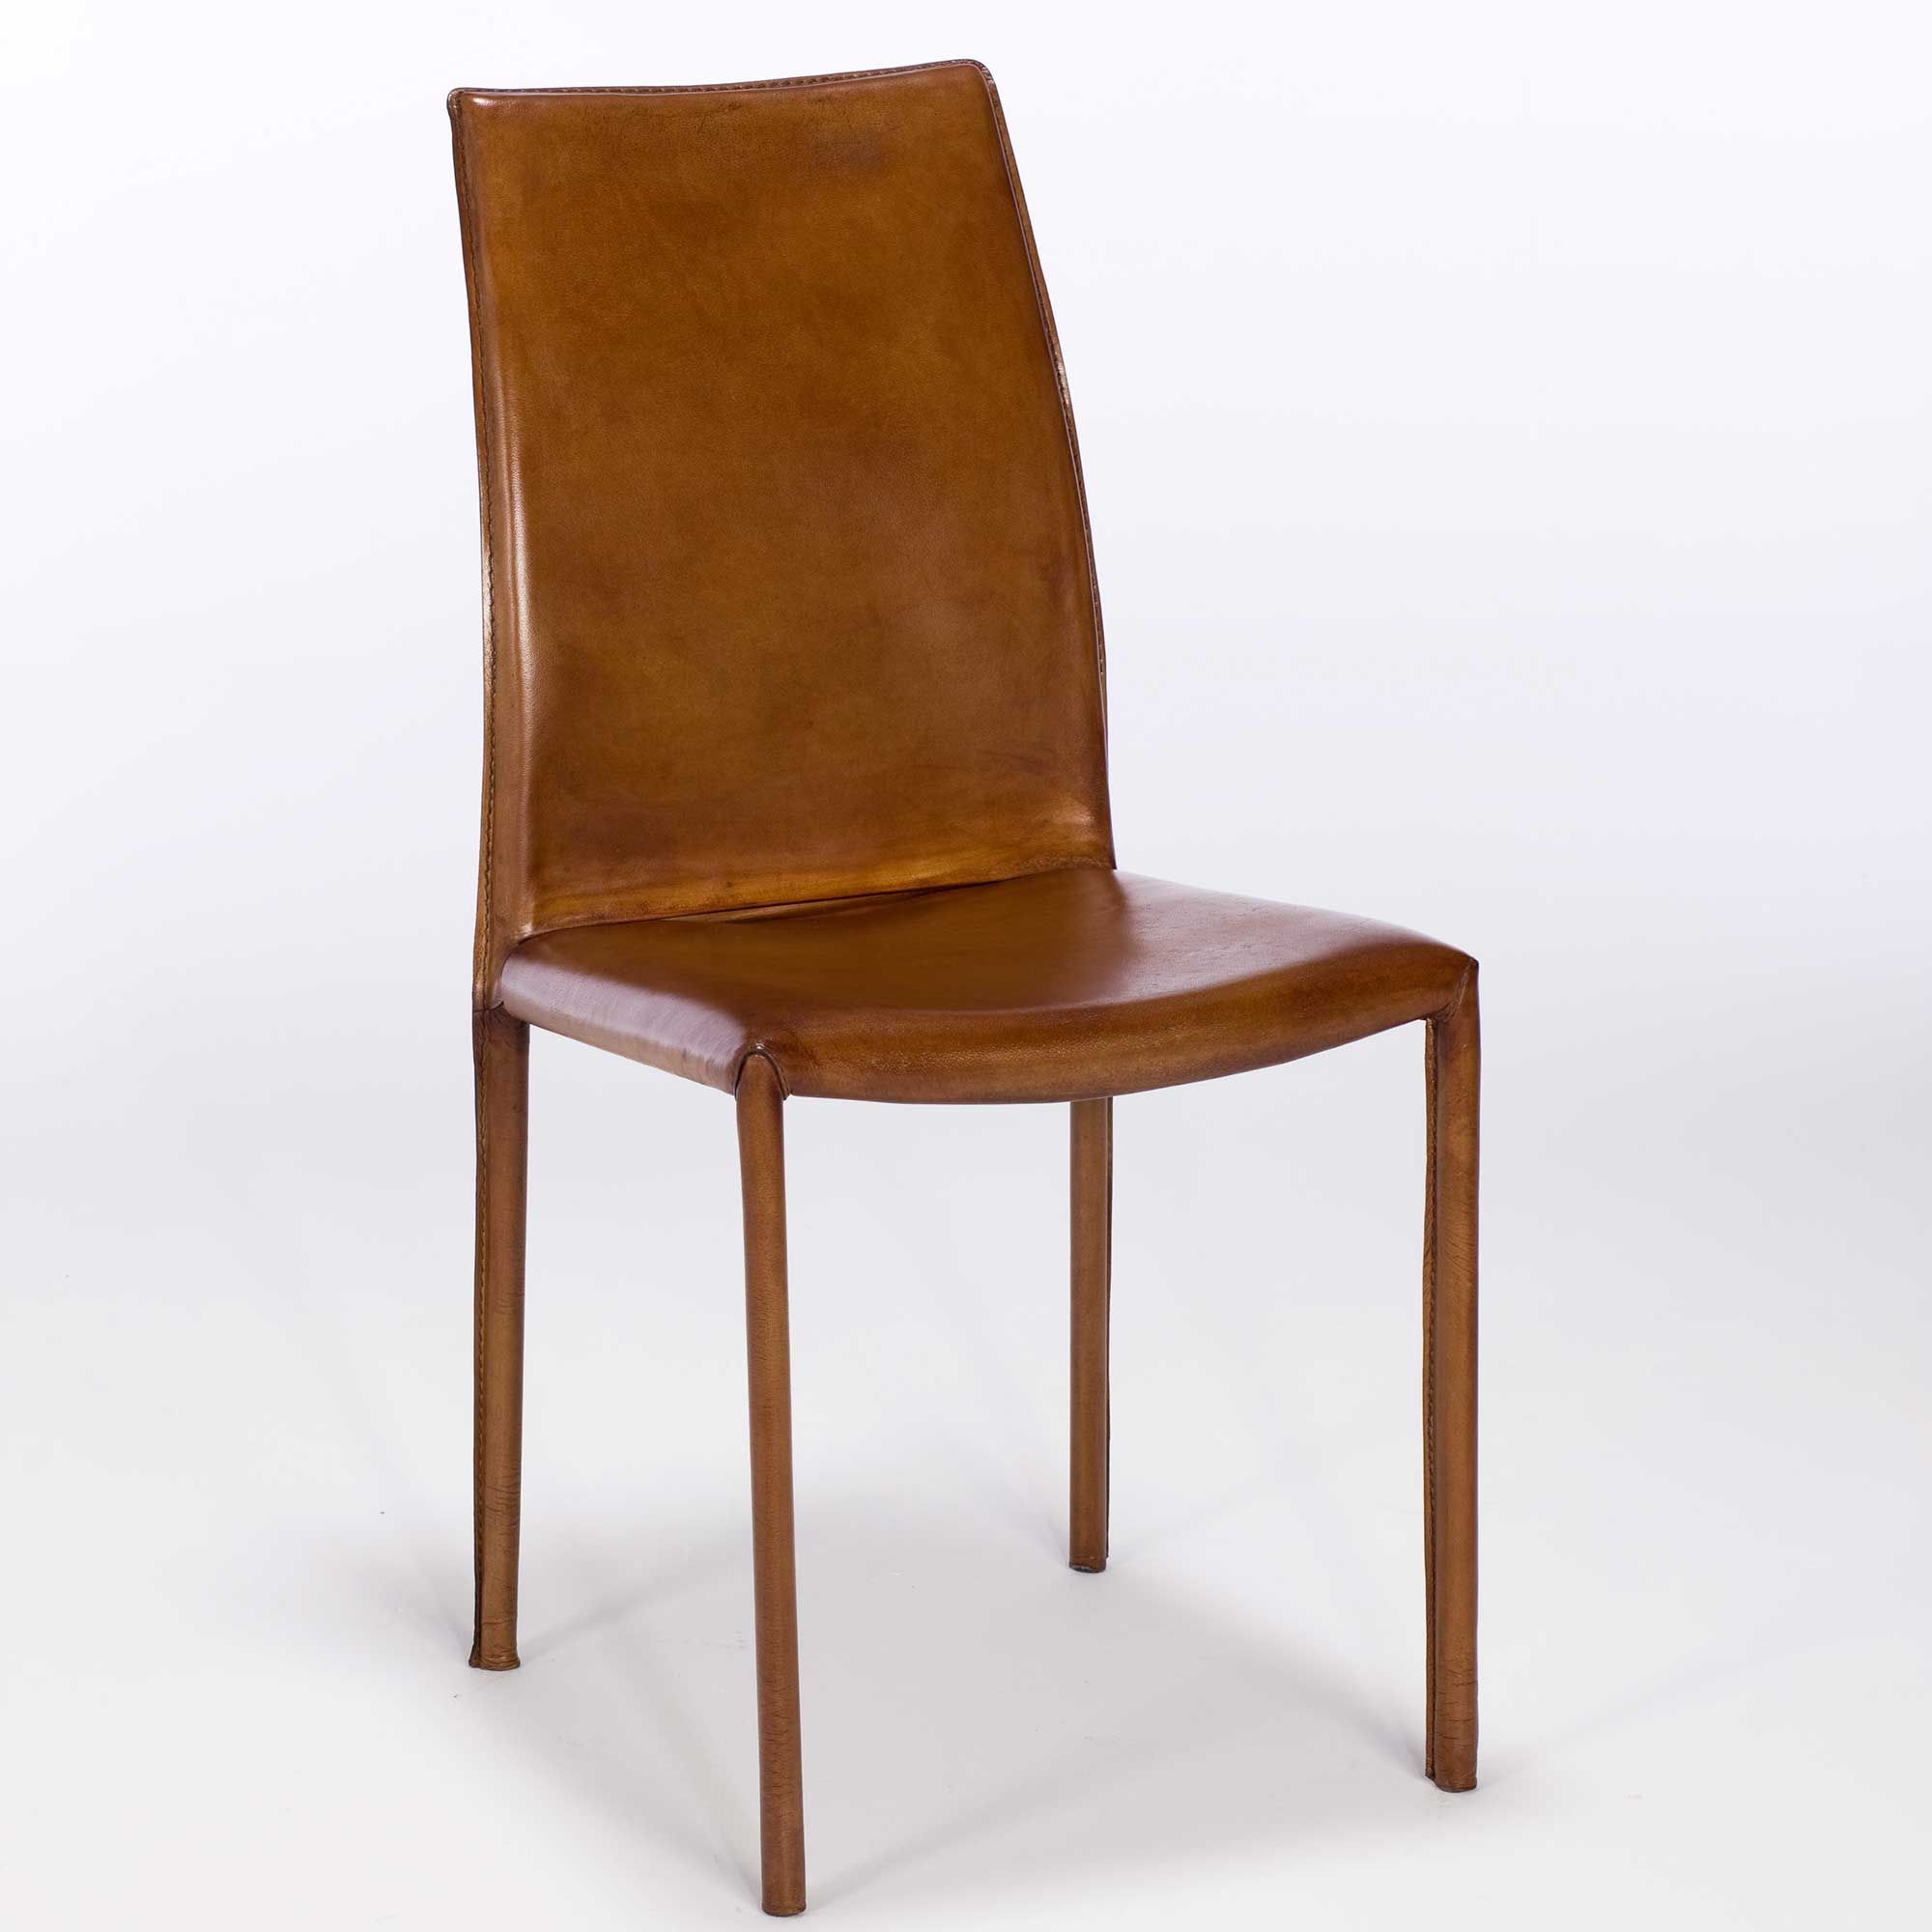 Whinfell Leather Dining Chair Buffalo Vintage Light Brown Available Online At Barker Stonehouse